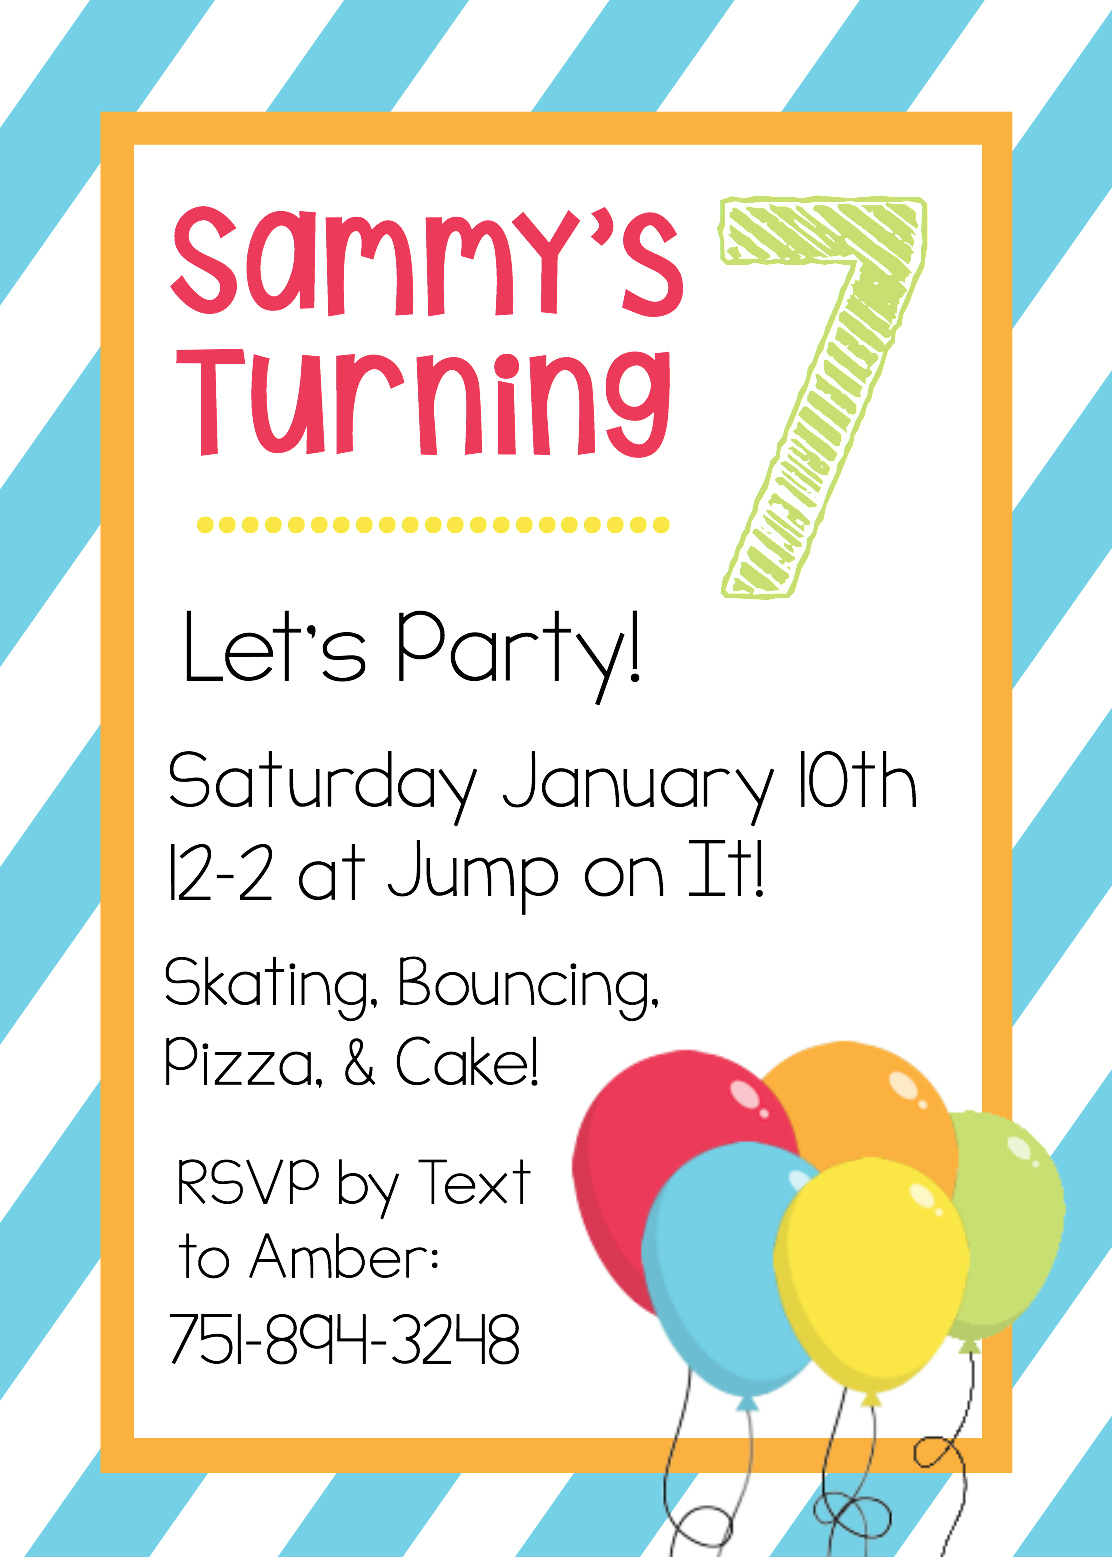 Printable Birthday Invitation Templates - Templates for birthday party invitations